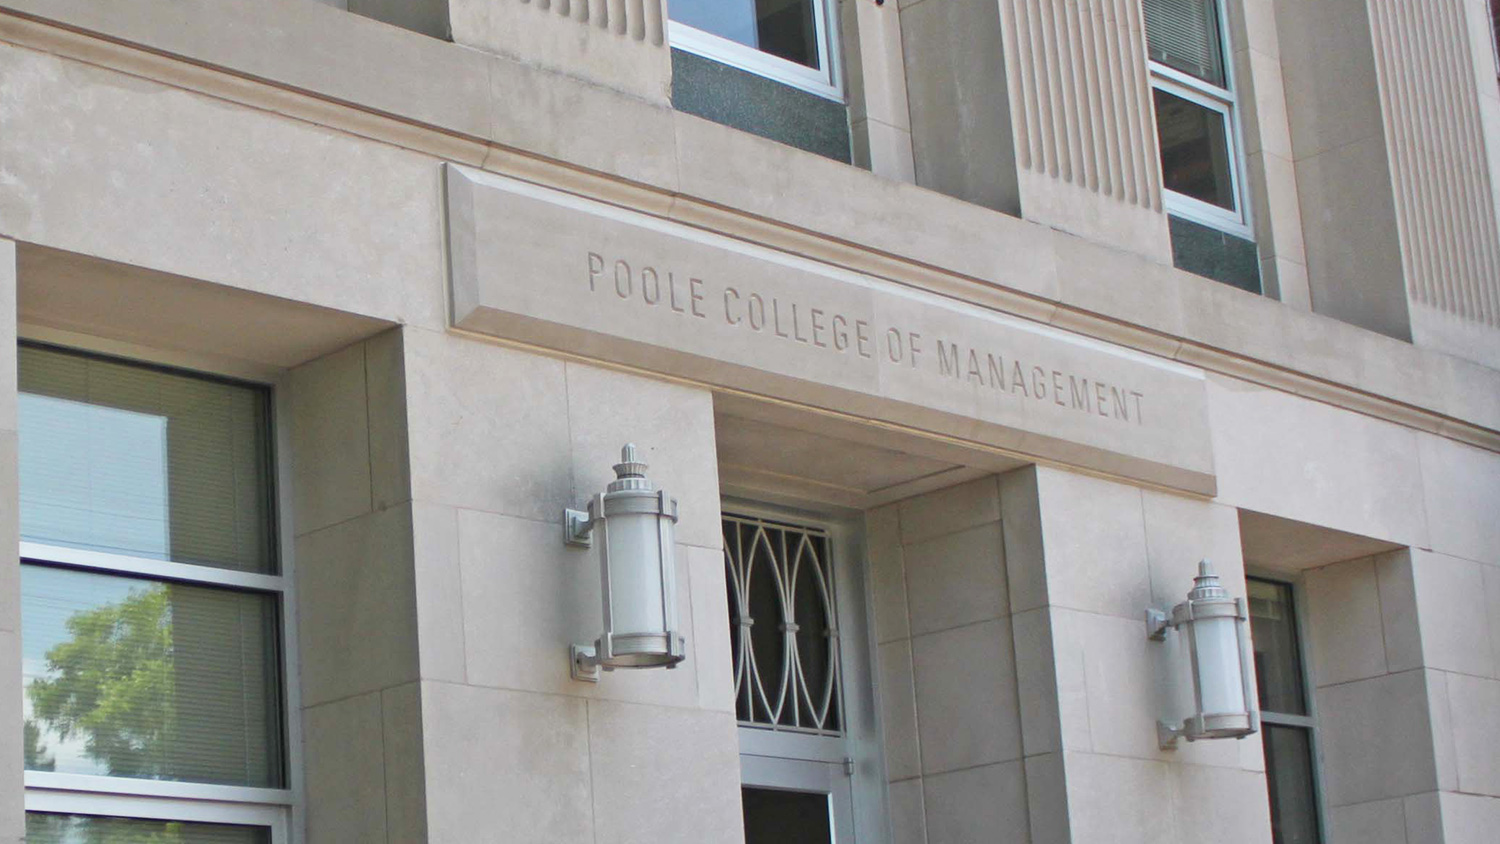 Nelson Hall, home to the NC State Poole College of Management